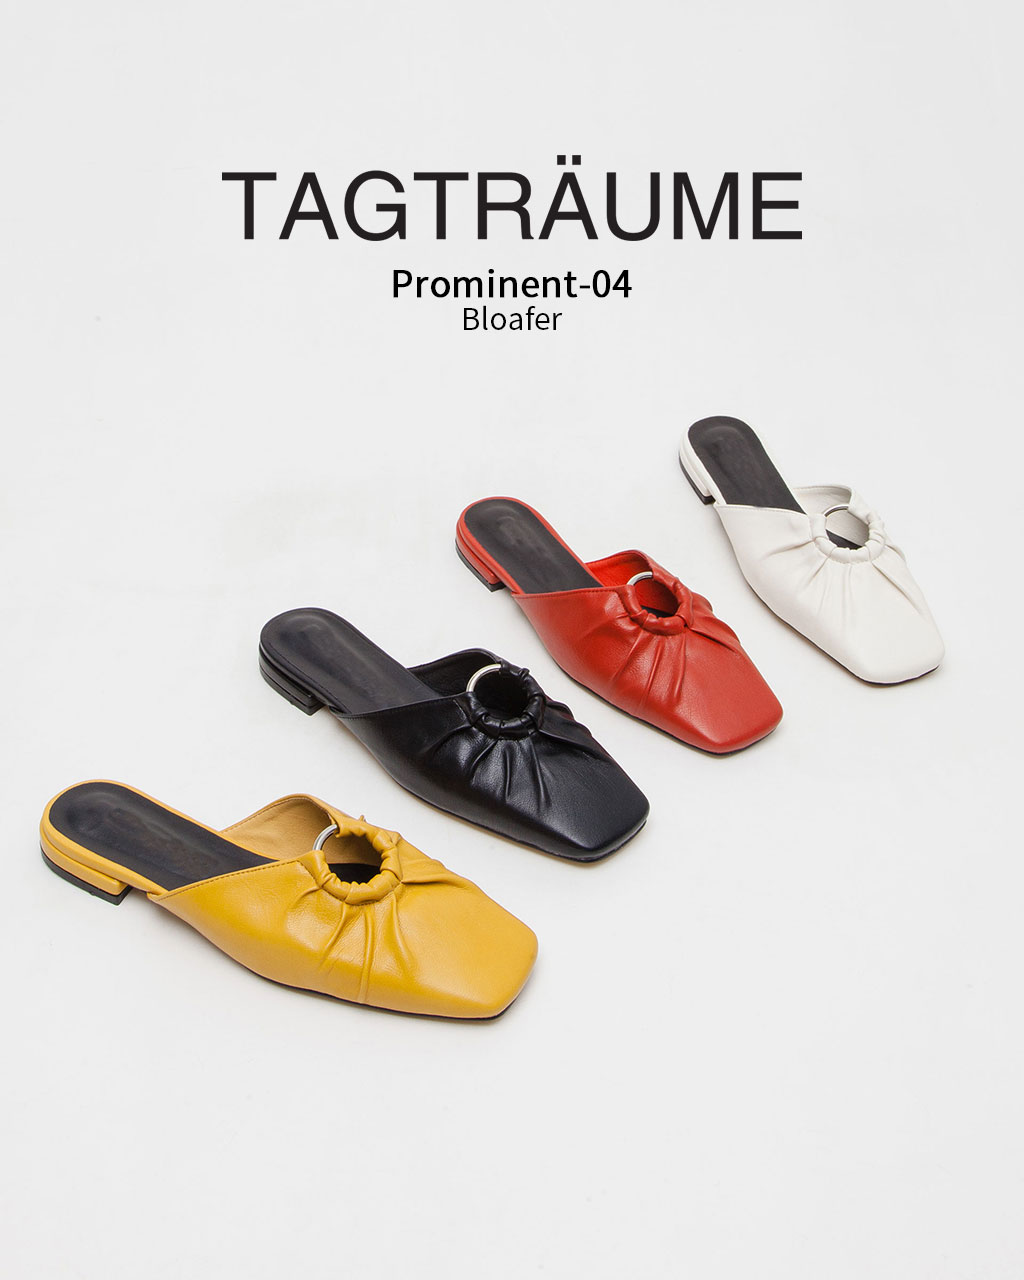 Tagtraume Prominent-04 - 0